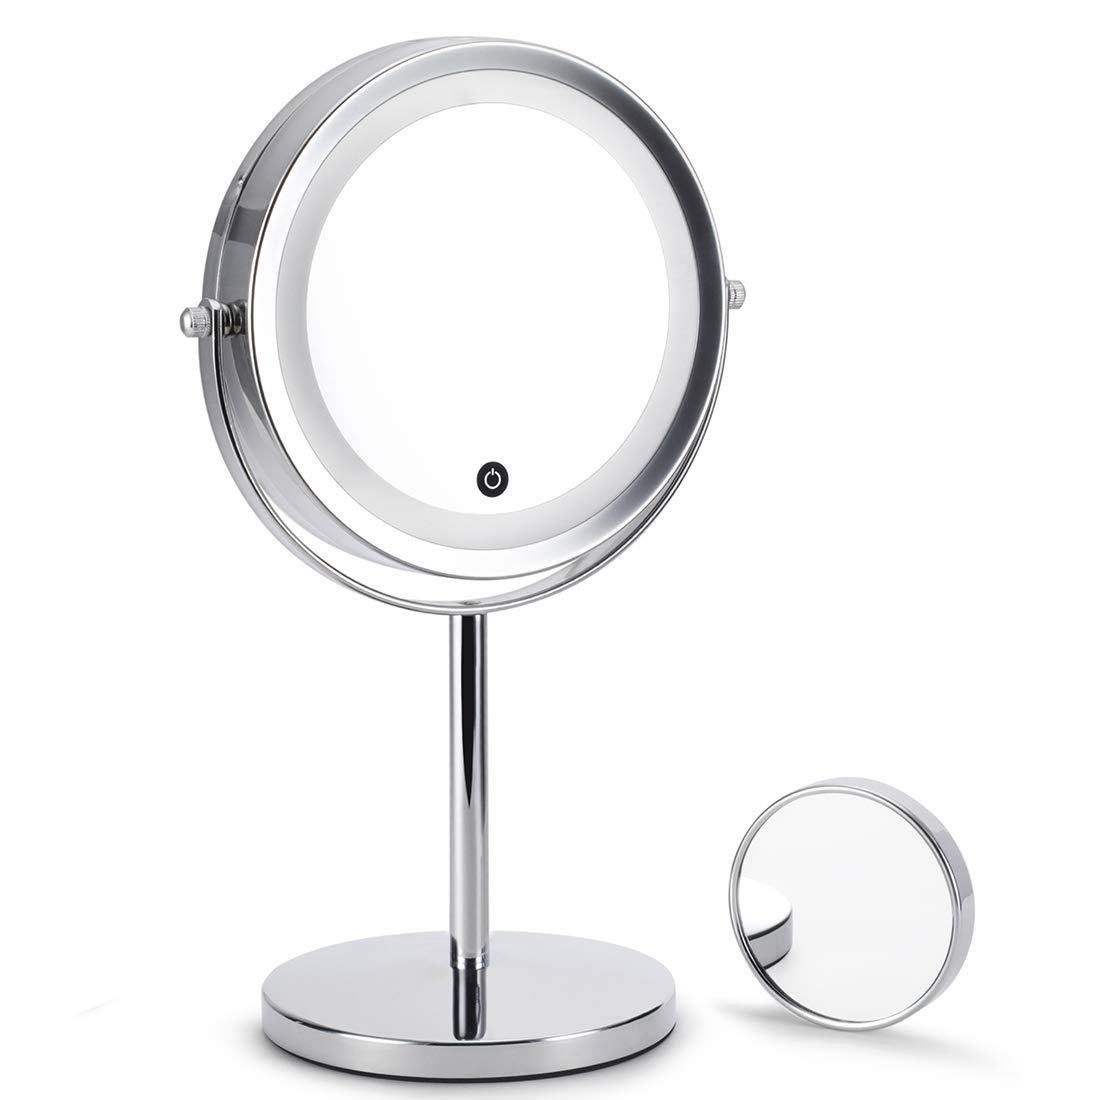 Lighted makeup mirror 7 inch 5x magnifying natural Light with Touch countrol switch adjust LED lumens, with a 1x 3x magnifying Portable mirror for home Travel